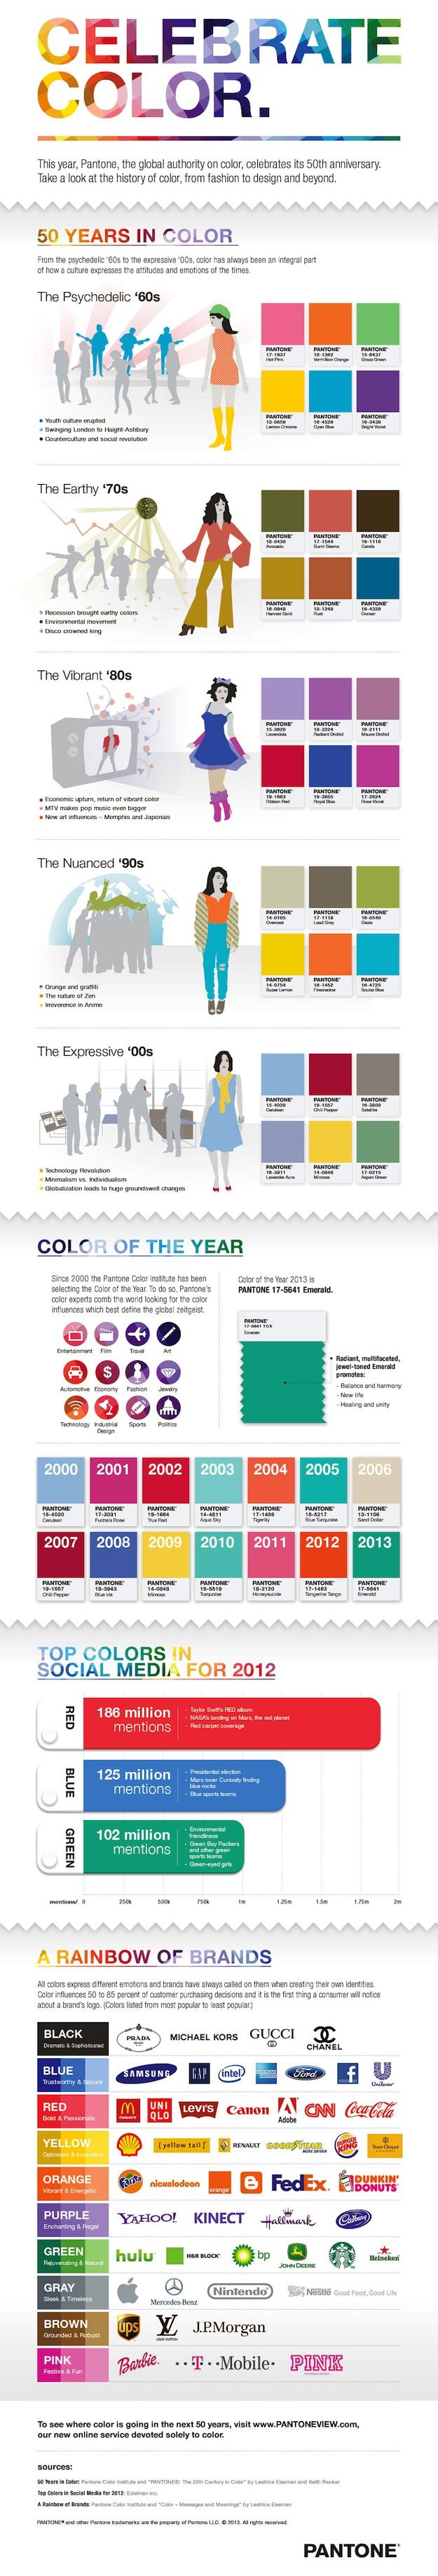 Pantone Traces 50 Years Of Color History [Infographic] - PSFK